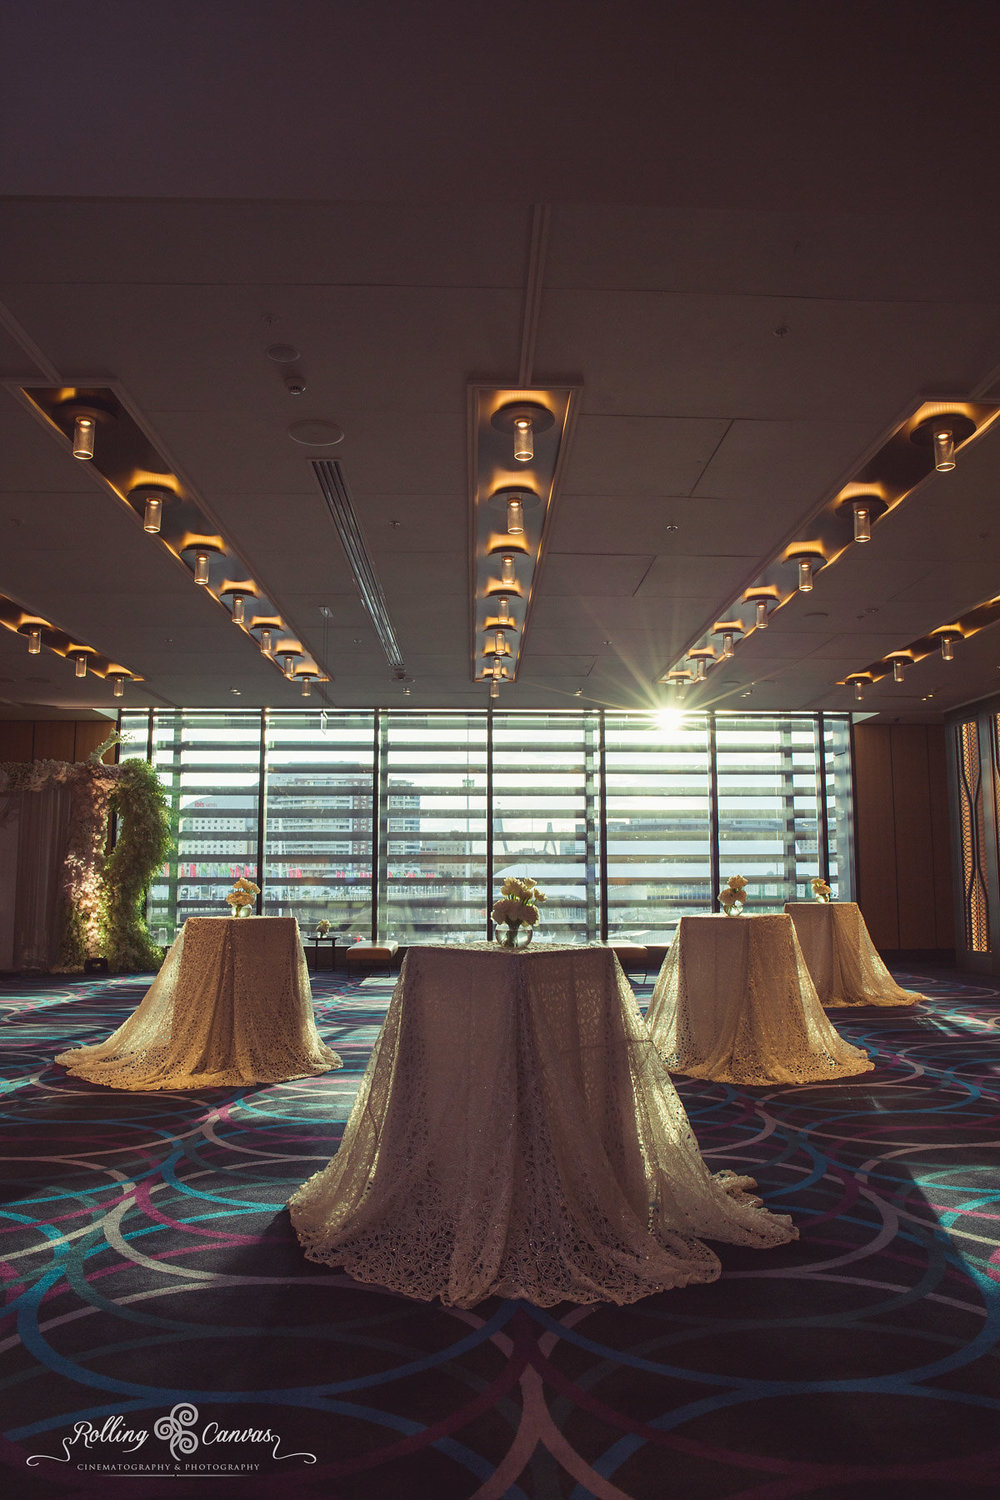 Wedding_Photography_Sydney_Rolling_Canvas_Presentation_elegant_reception_chandeliers_fairylights_white_dancefloor_luxury_linen_decor_cocktail_function_Hyatt_Regency_Sydney-57224.jpg